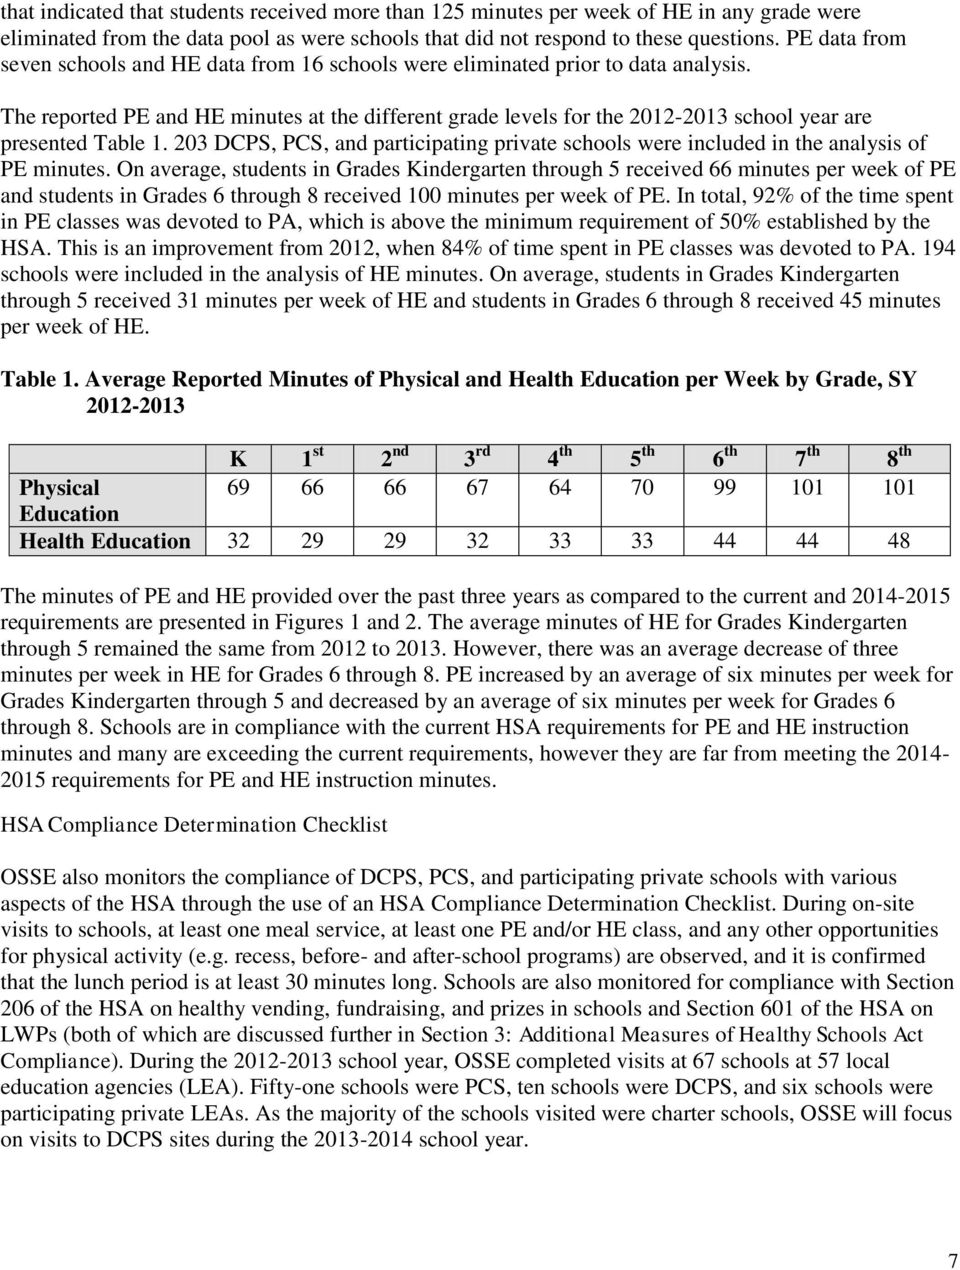 The reported PE and HE minutes at the different grade levels for the 2012-2013 school year are presented Table 1.